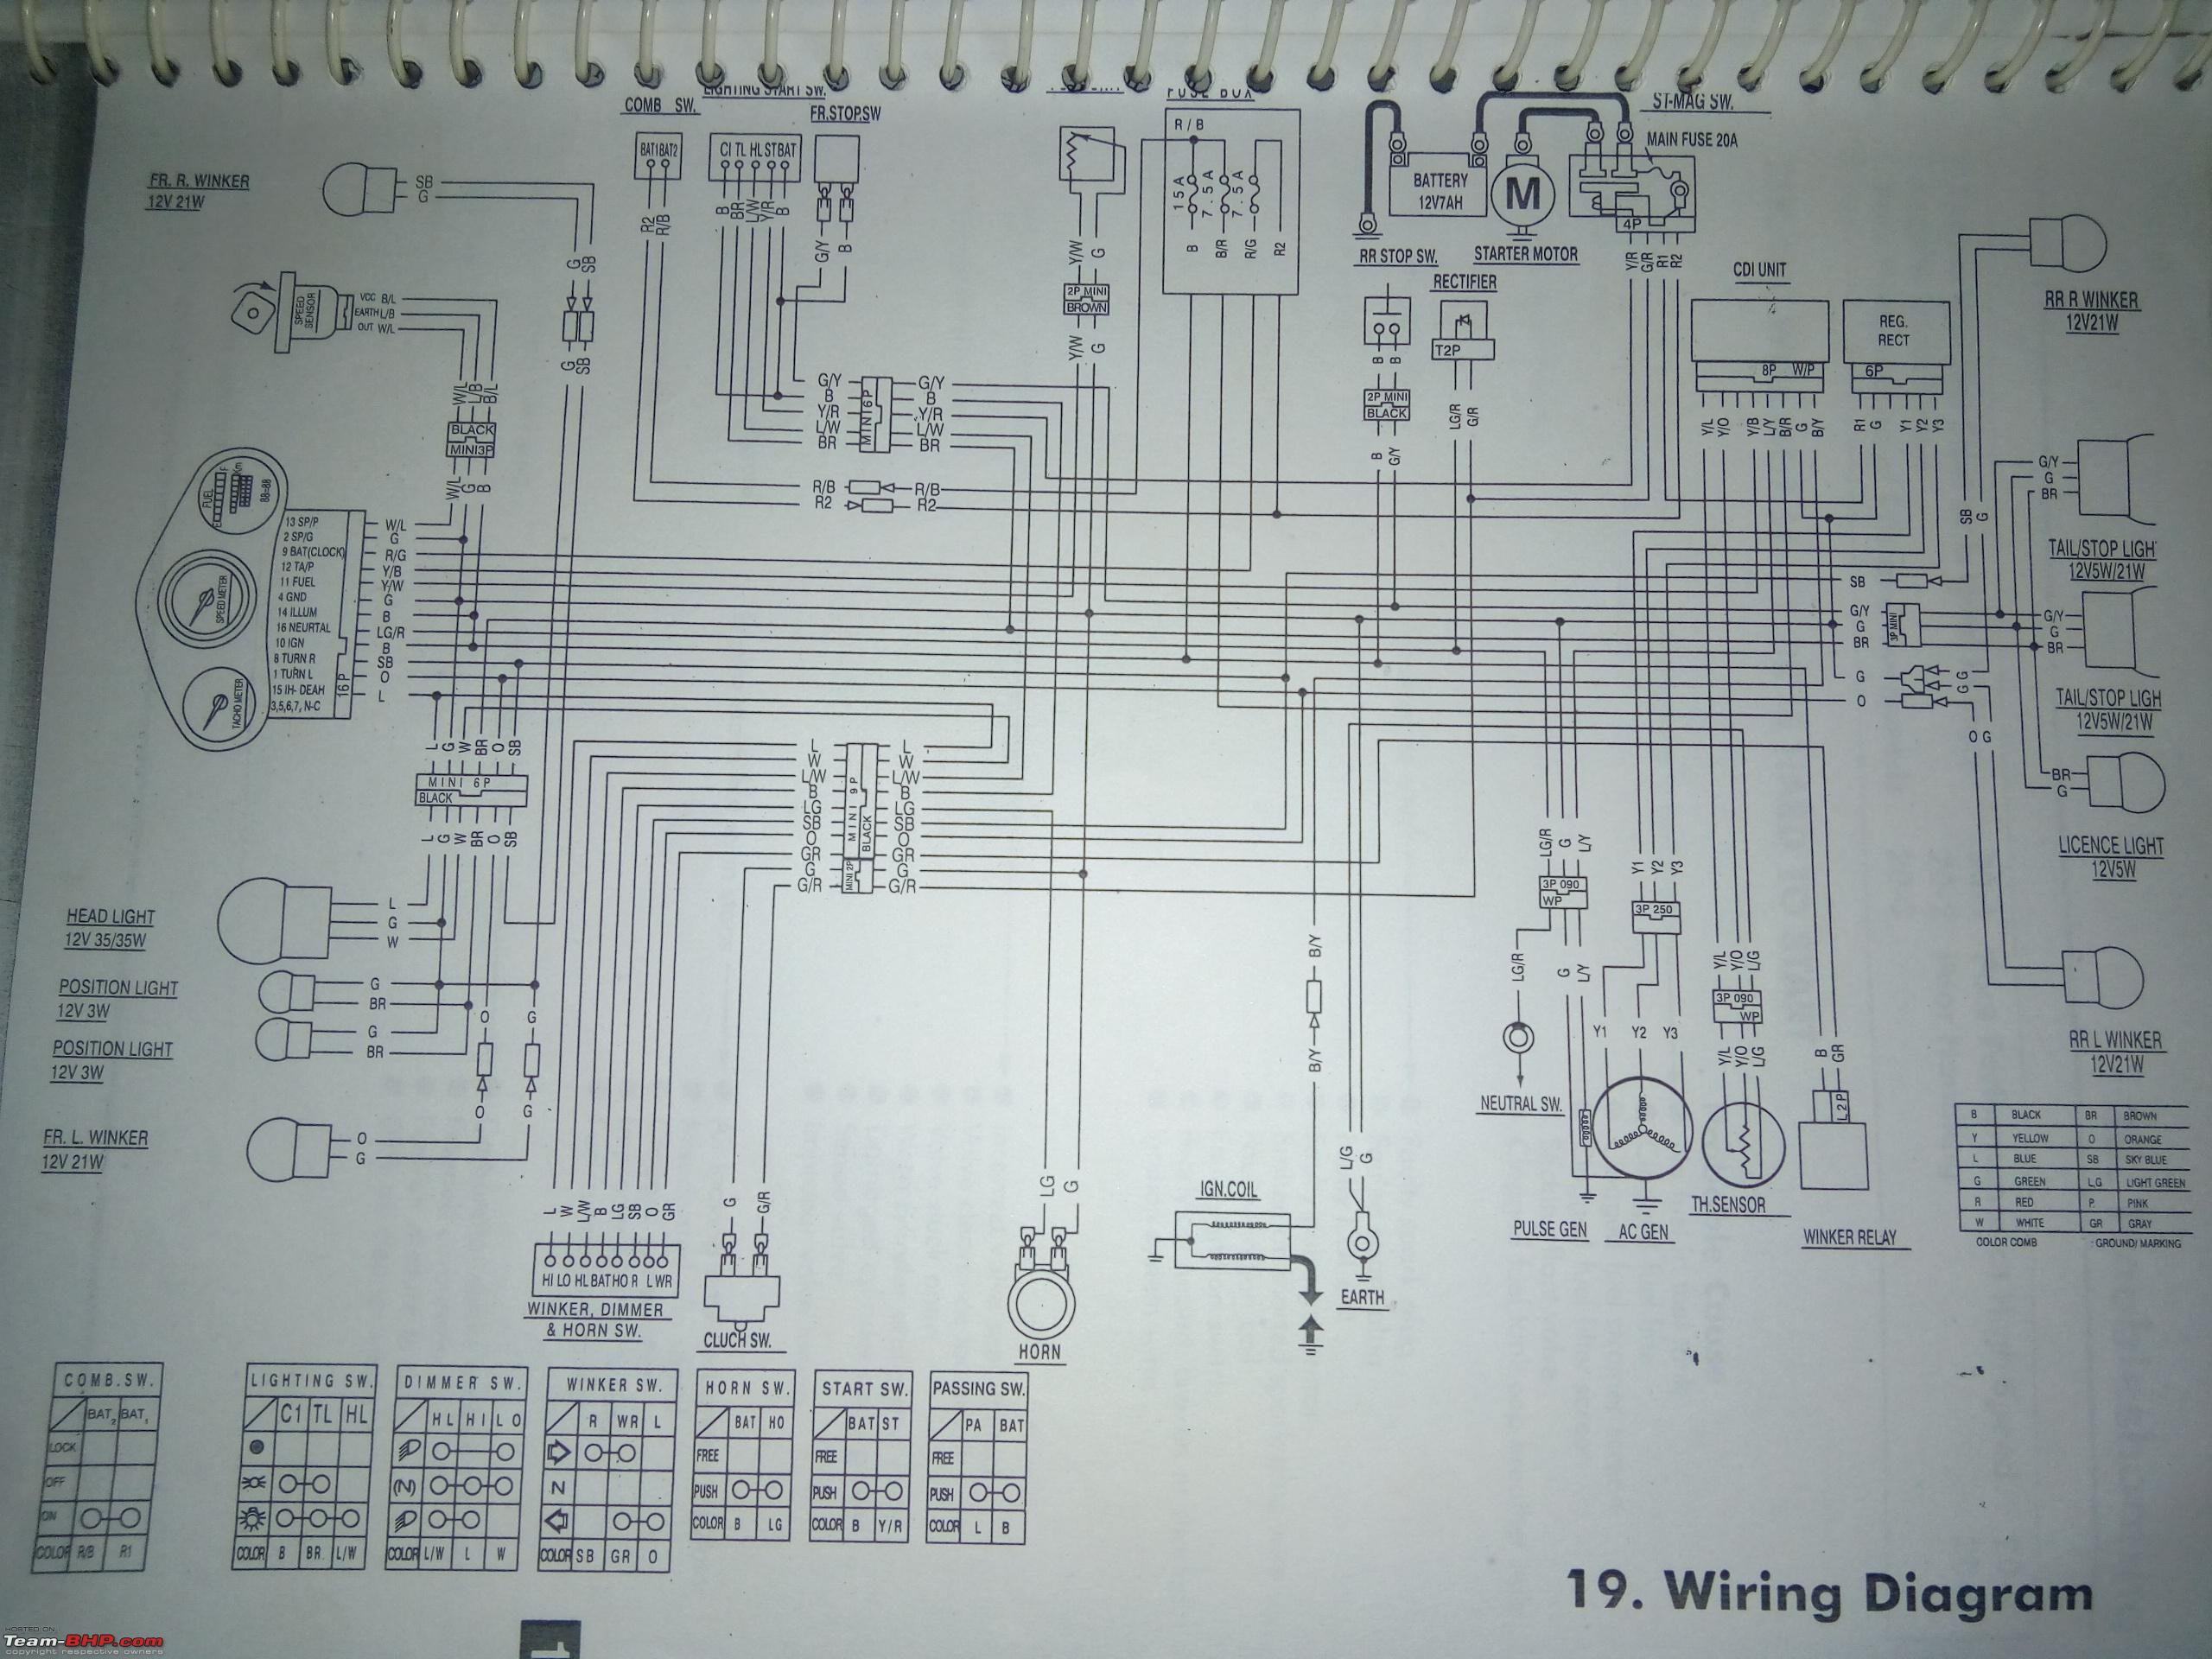 Wiring Diagrams Of Indian Two-wheelers - Page 2